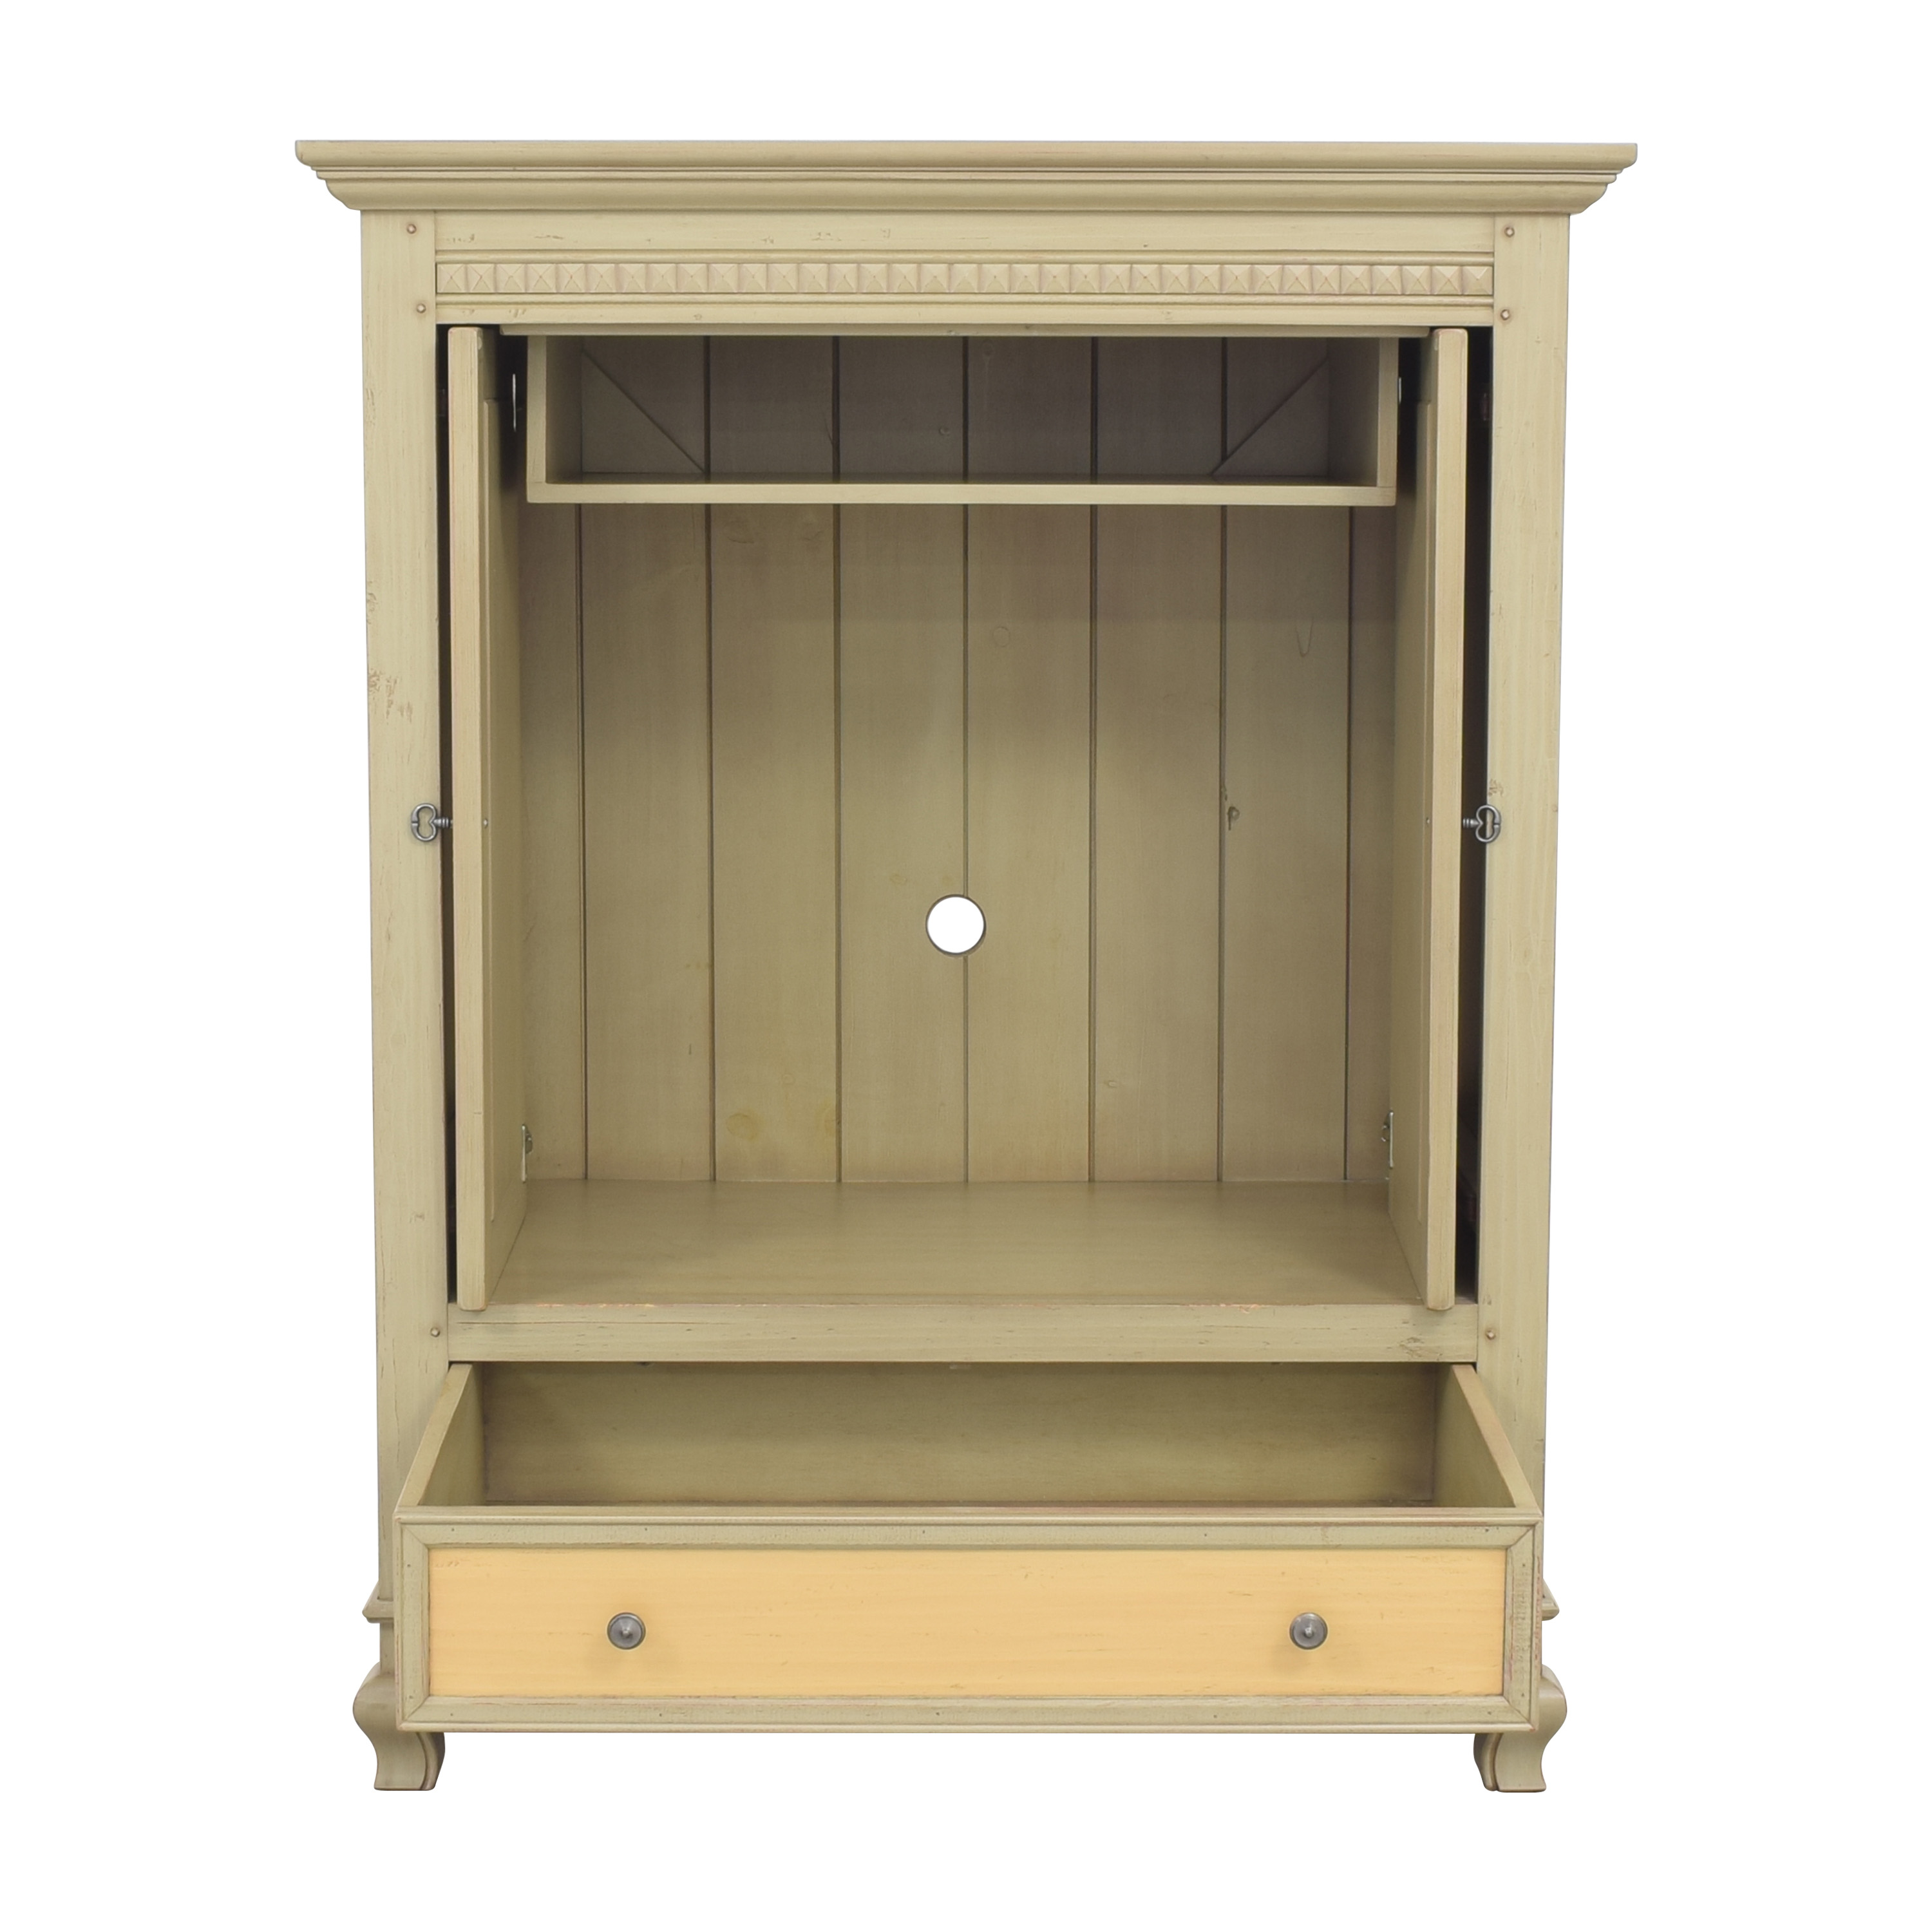 Sumter Cabinet Co. Sumter Cabinet Co. Media Armoire pa